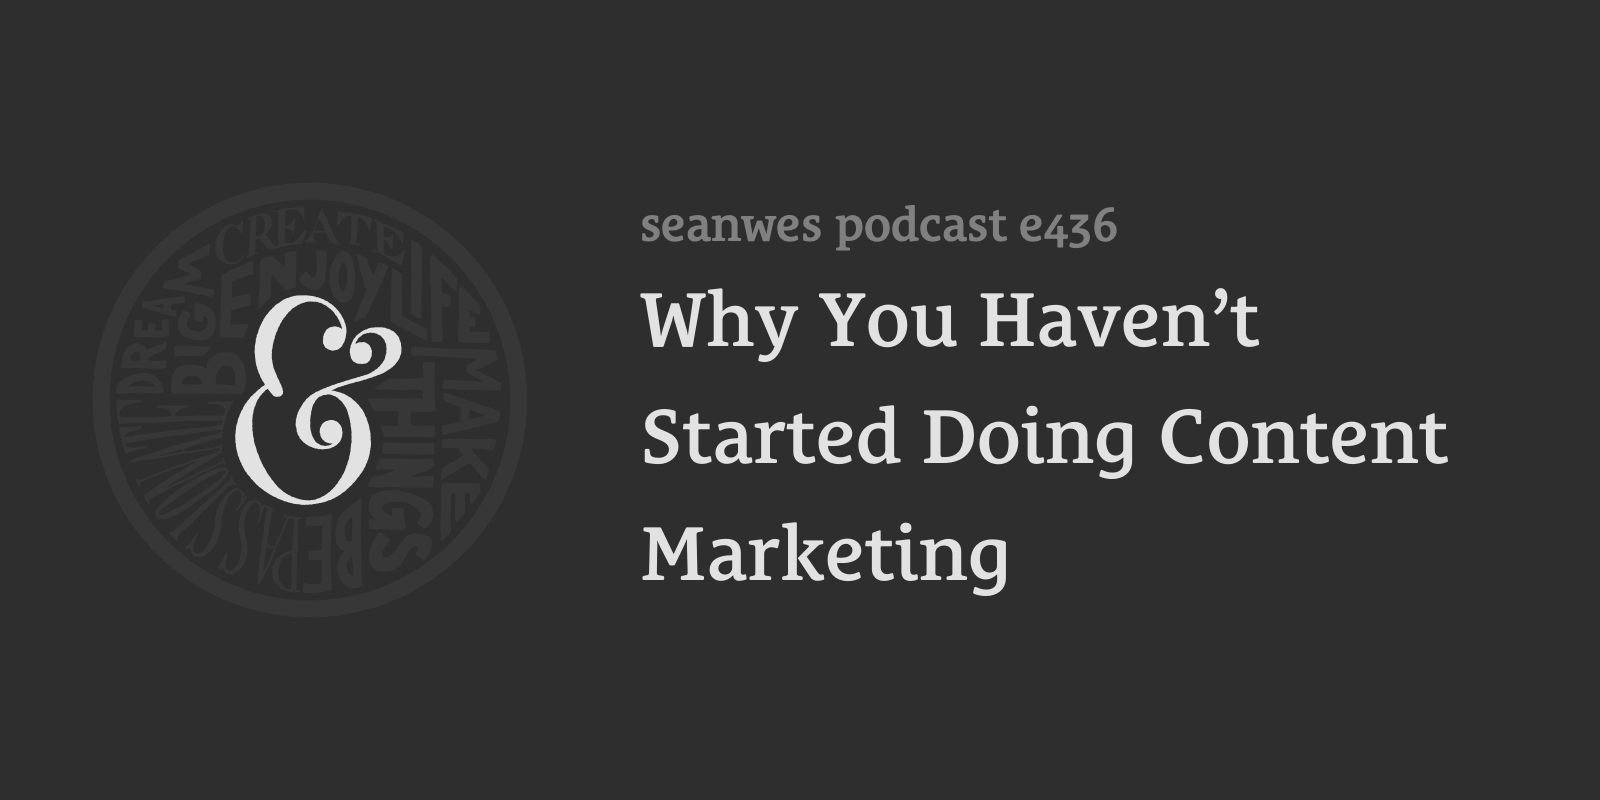 seanwes podcast 436: Why You Haven't Started Doing Content Marketing